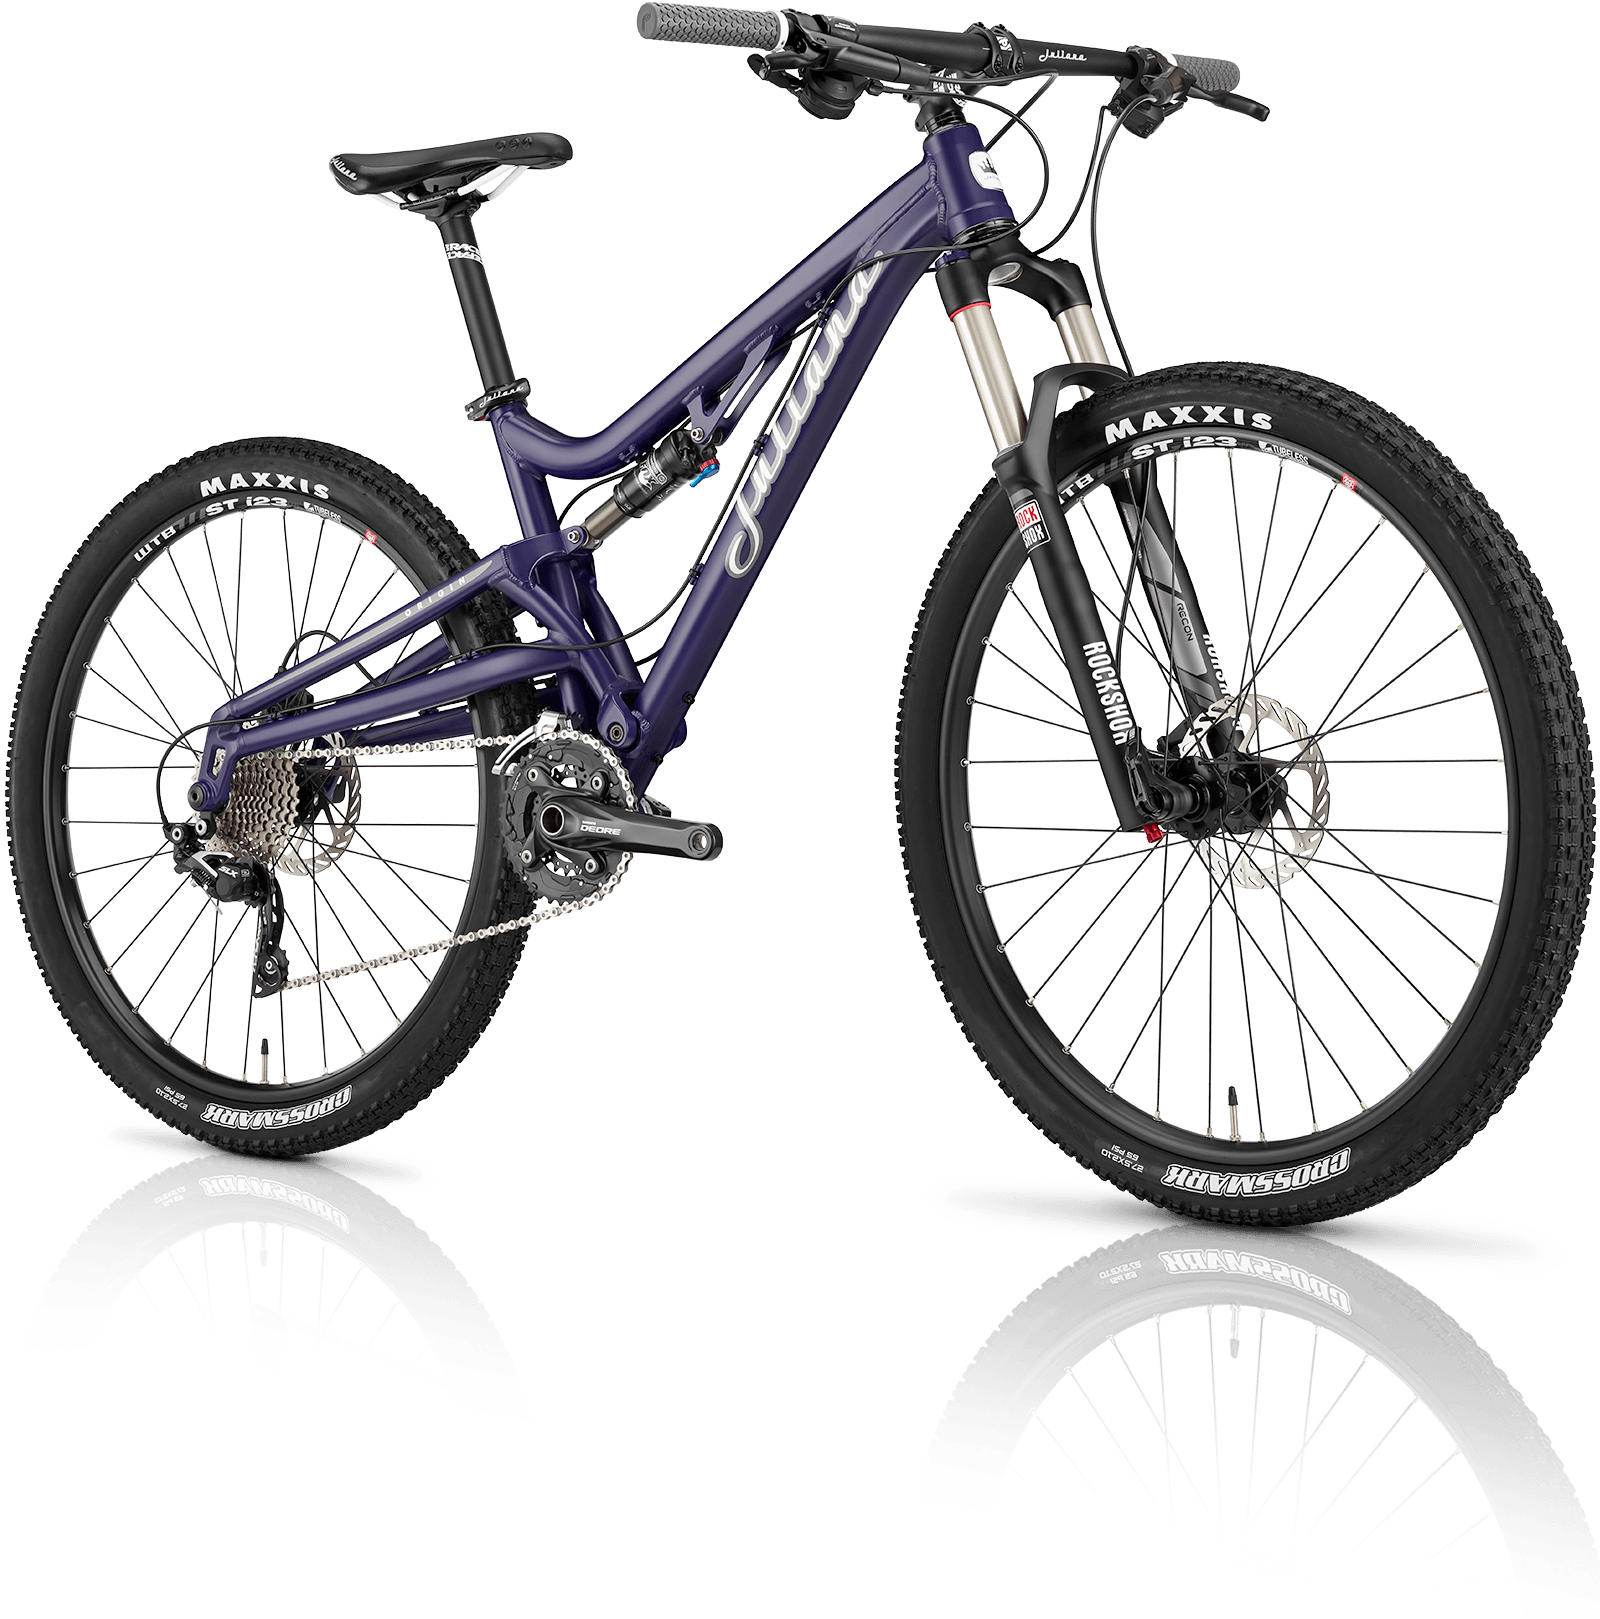 Juliana Bicycles Origin Png image #45204